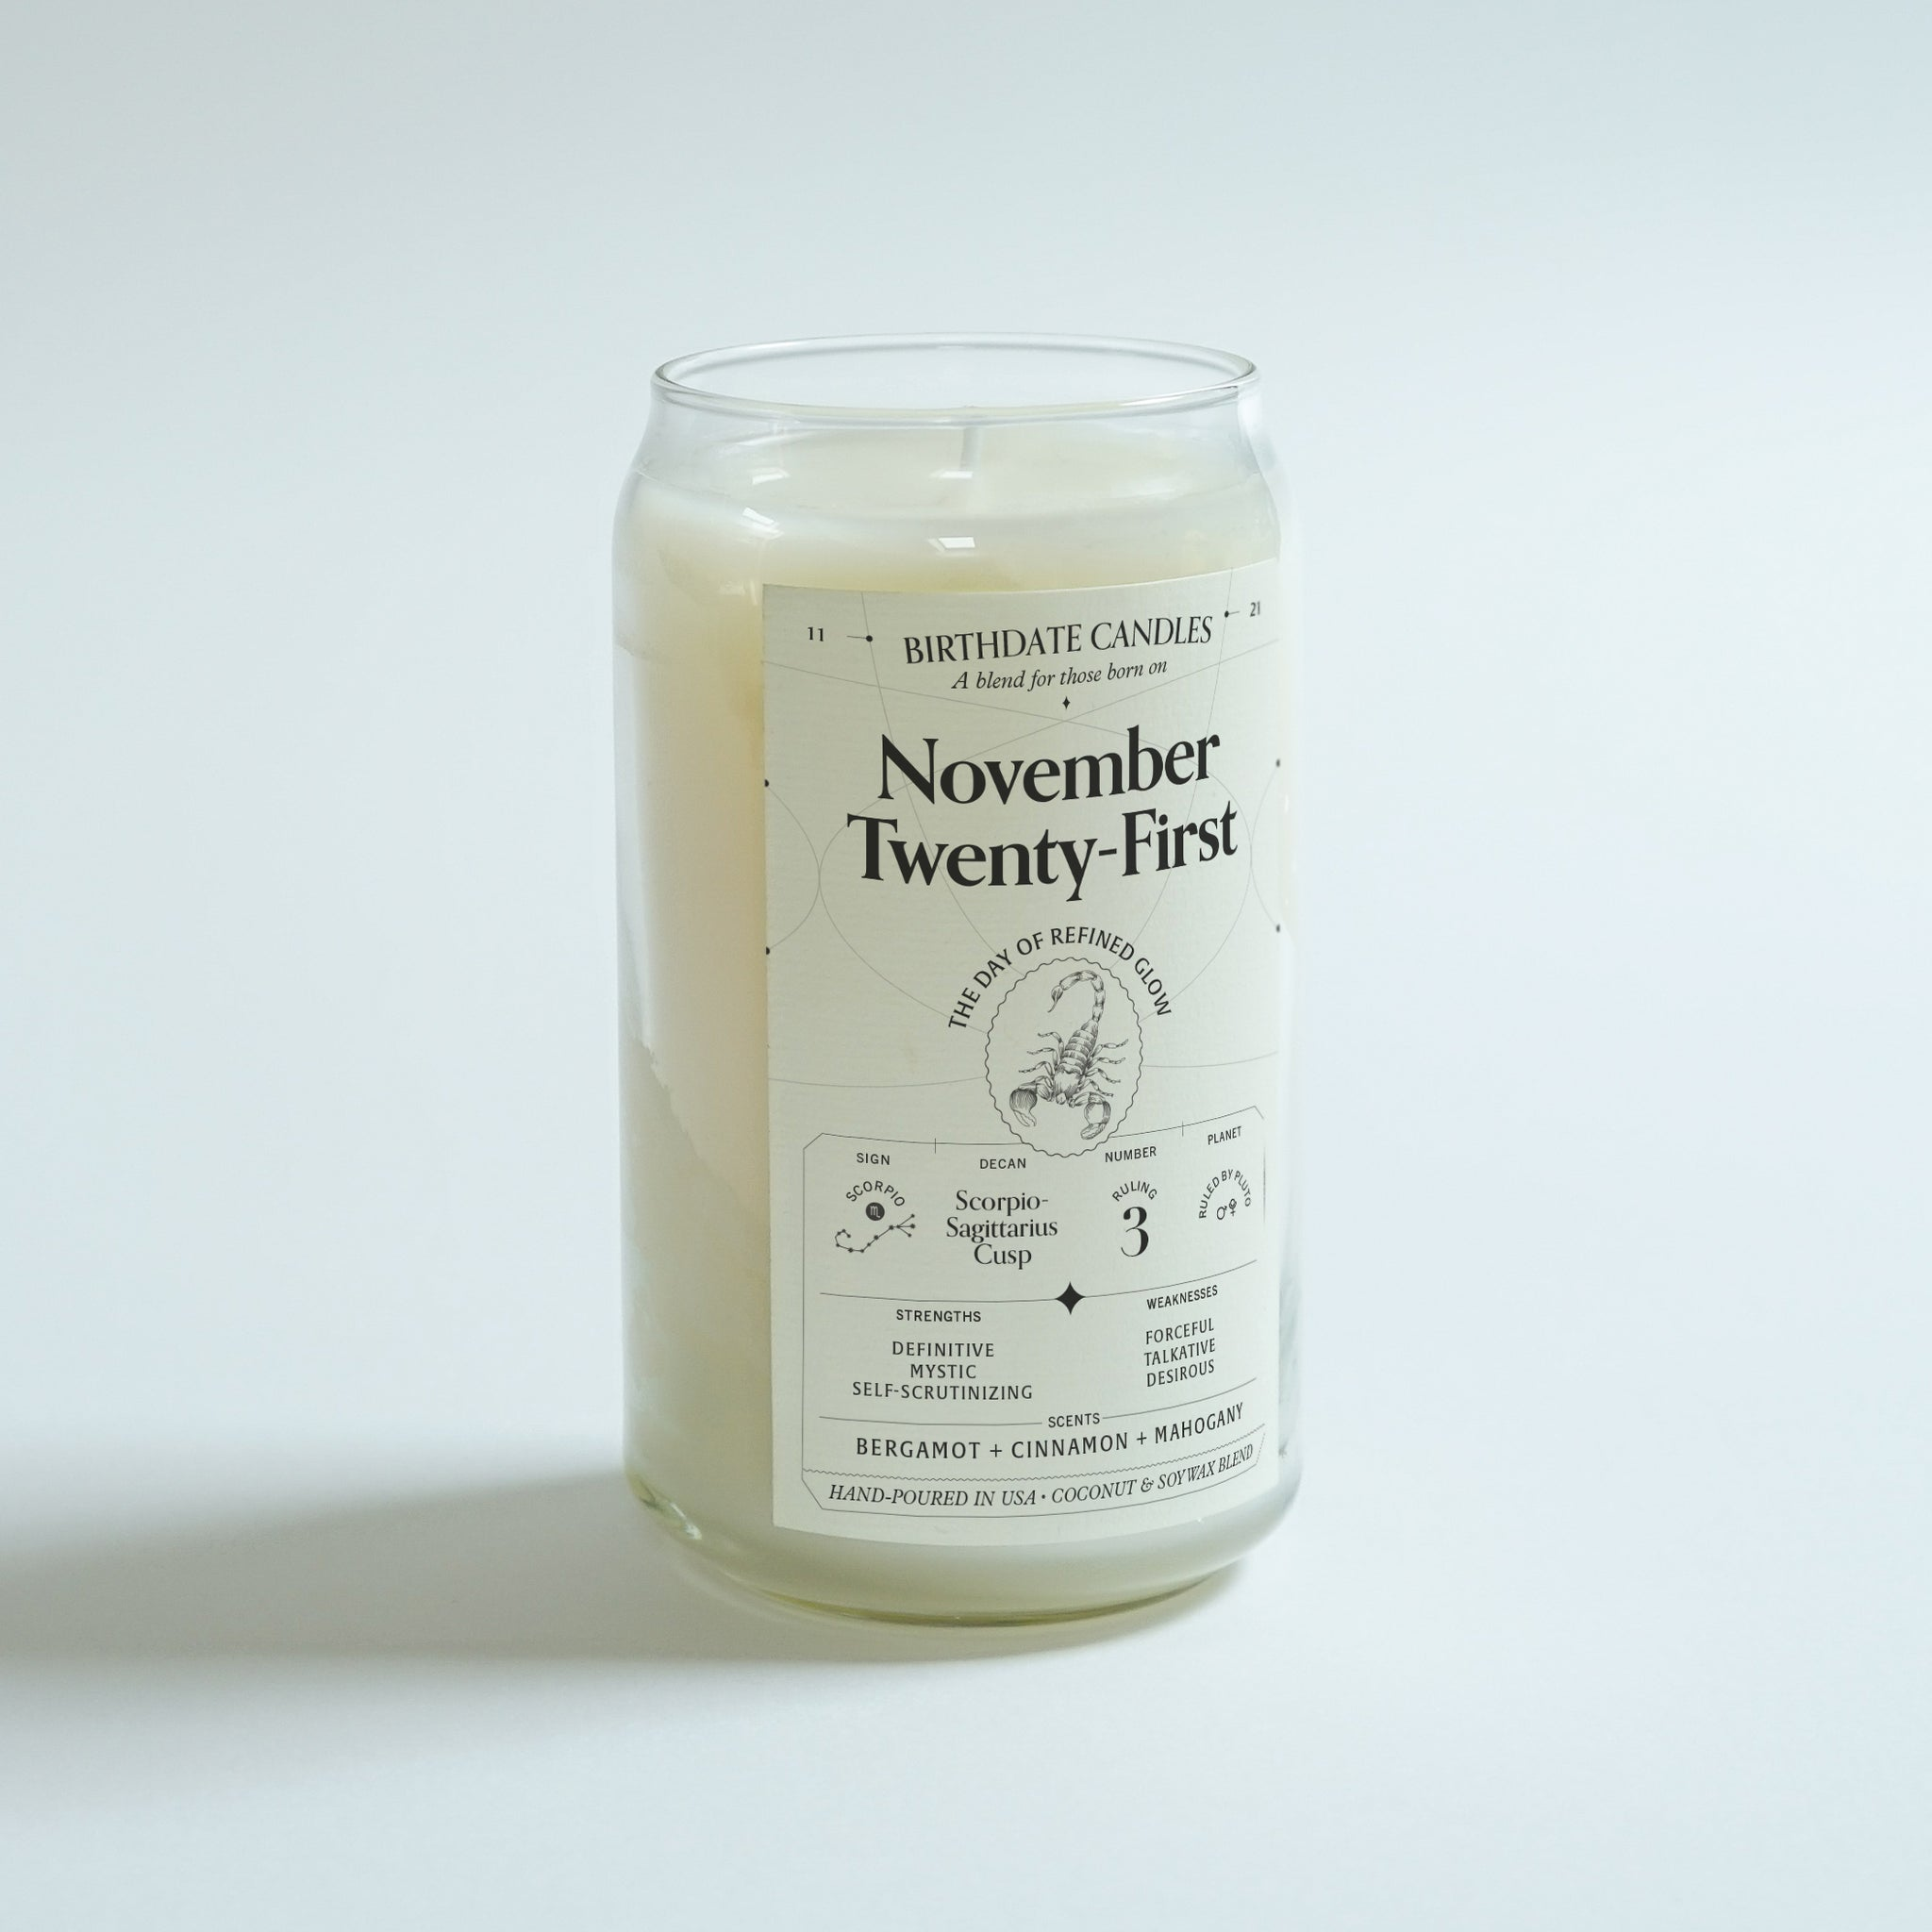 The November Twenty-First Birthday Candle